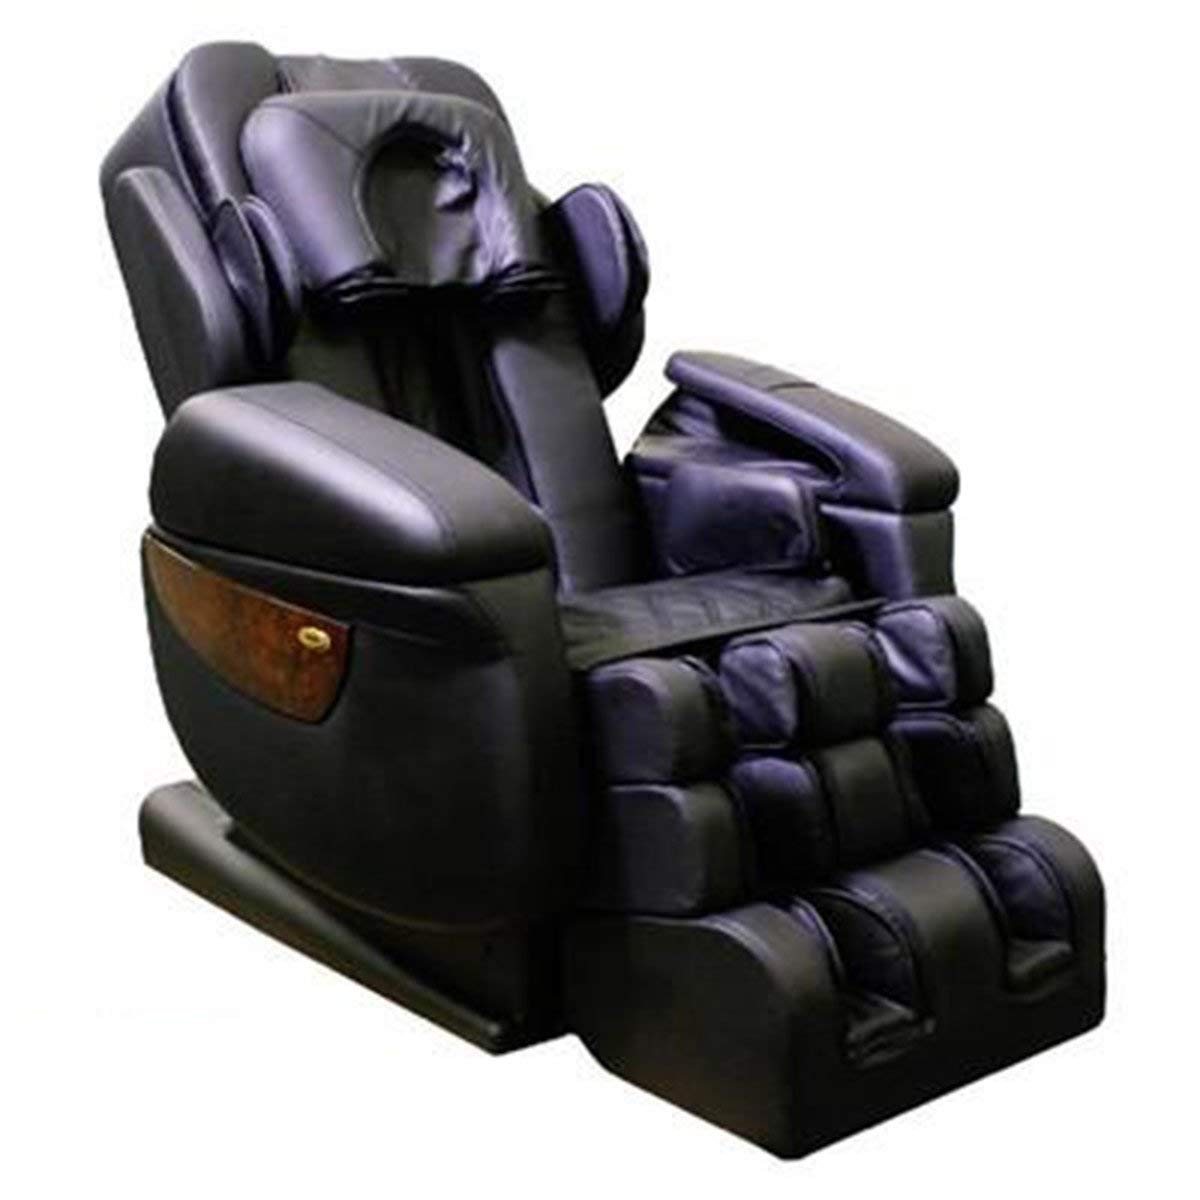 Inada Sogno Dreamwave Massage Chair Best Massage Chair Sleep Sherpa S Top Picks The Sleep Sherpa